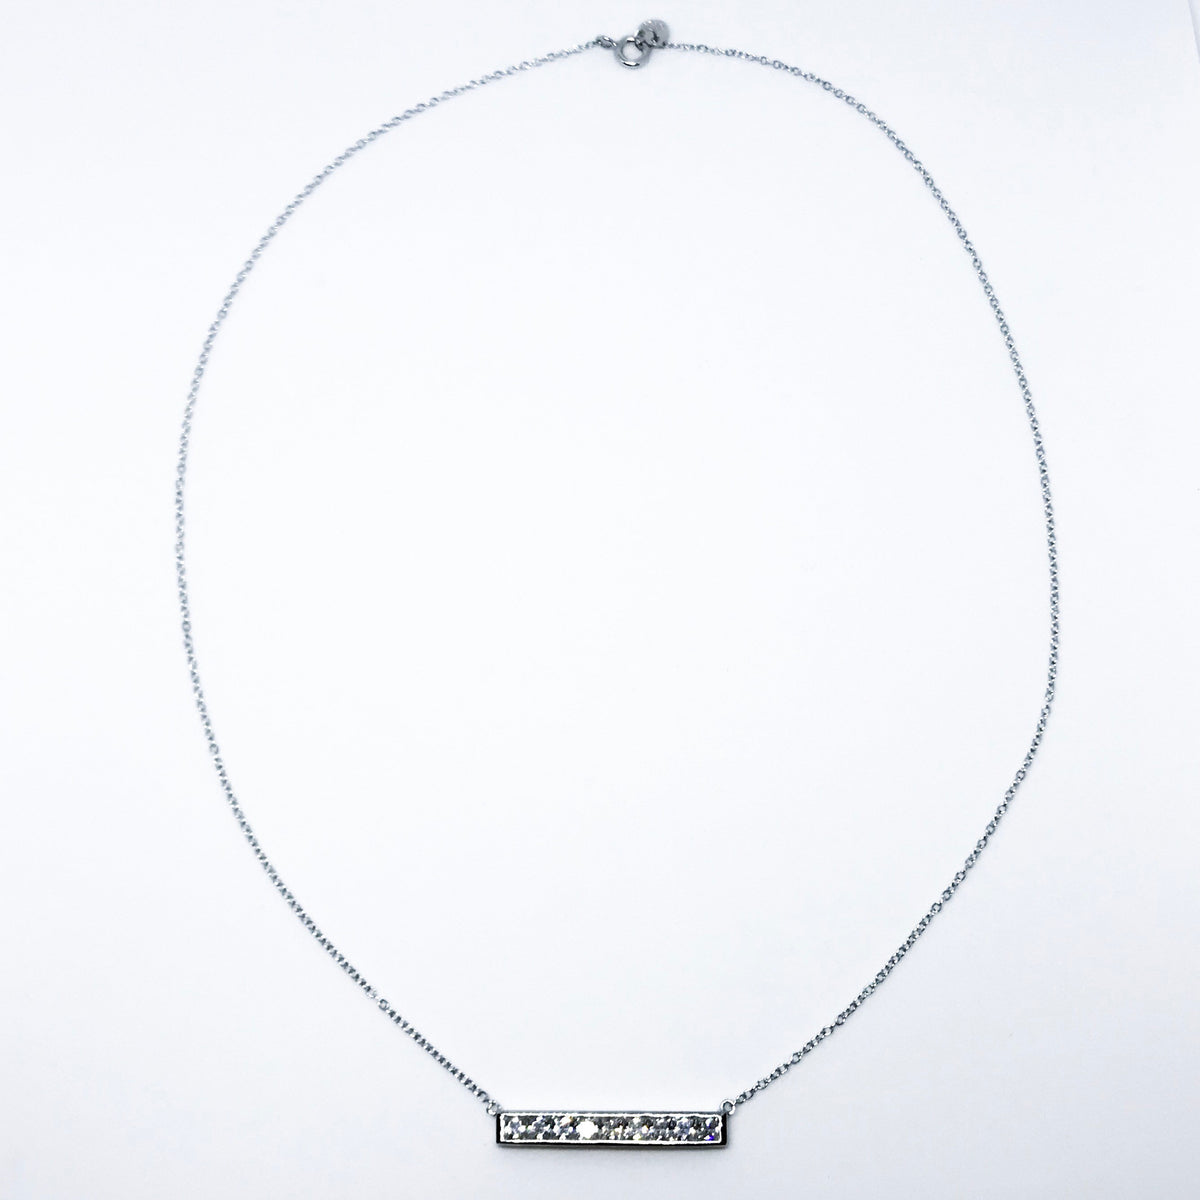 14K White Gold on 925 Sterling Silver Bar Necklace - 3 Royal Dazzy